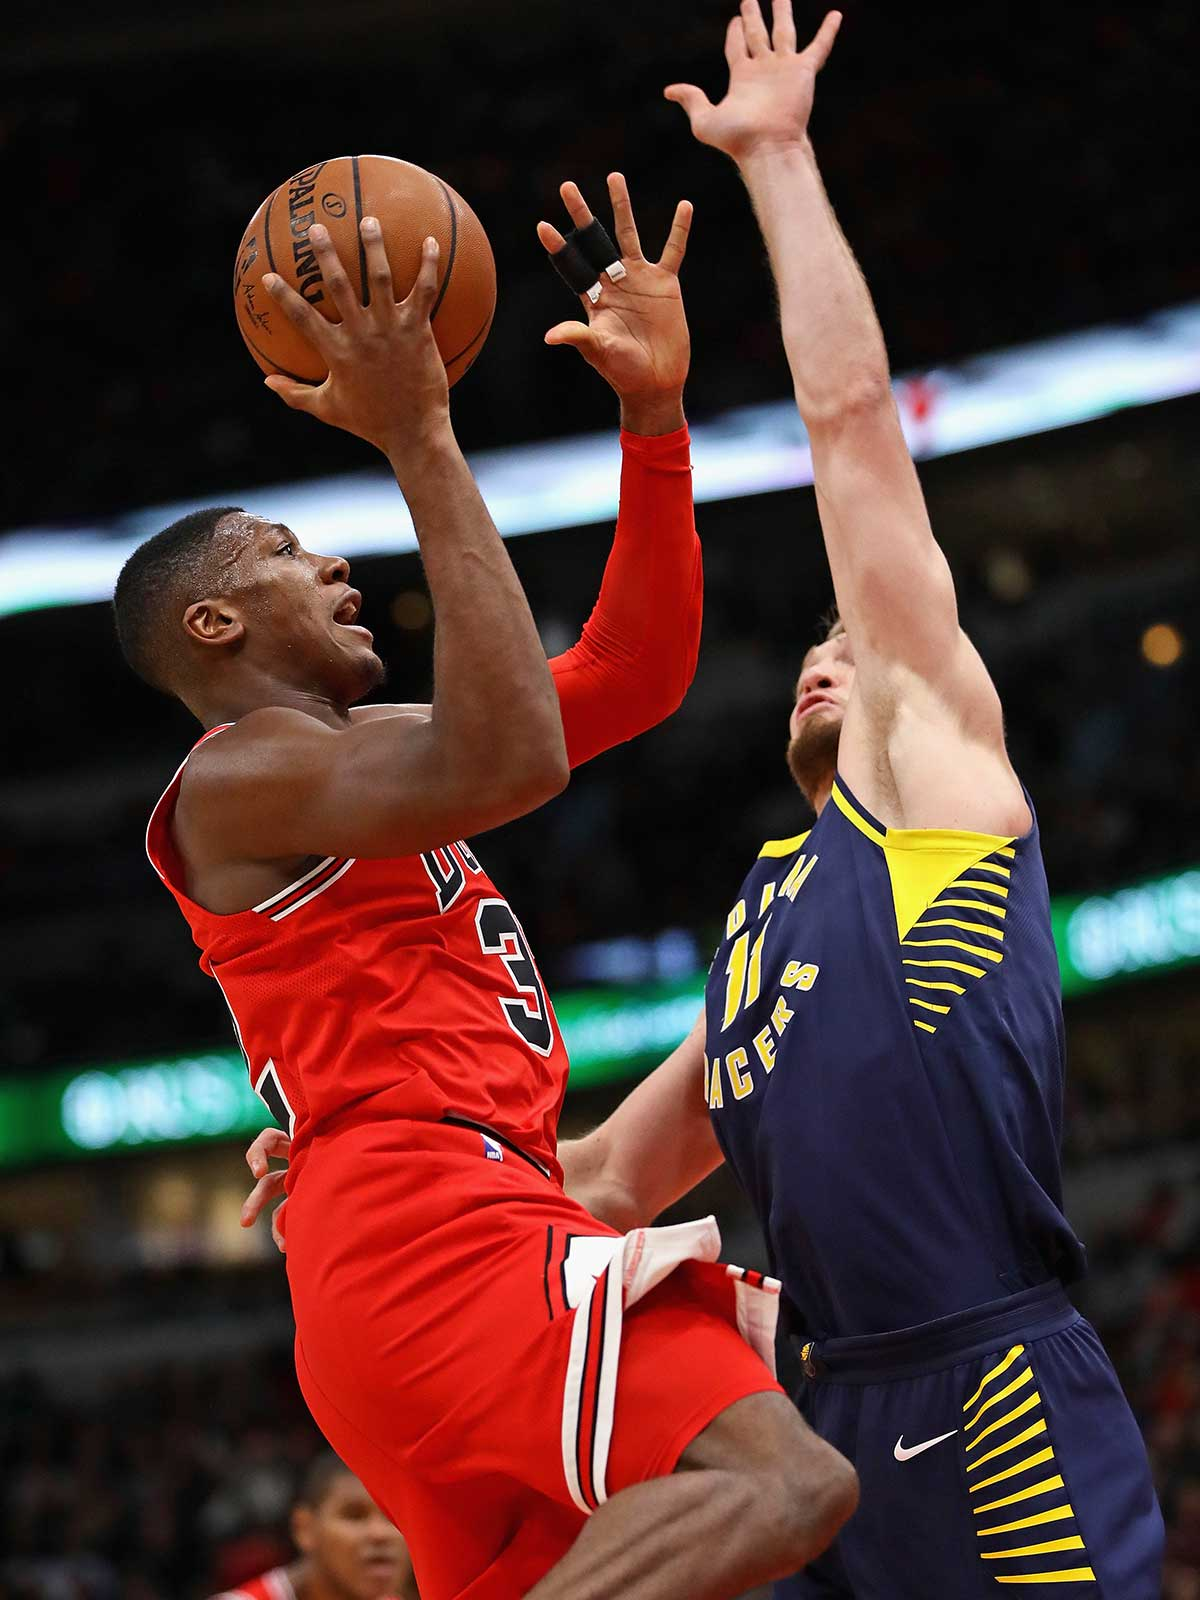 Kris Dunn #32 of the Chicago Bulls drievs to the basket against Domantas Sabonis #11 of the Indiana Pacers at the United Center on November 10, 2017 in Chicago, Illinois.